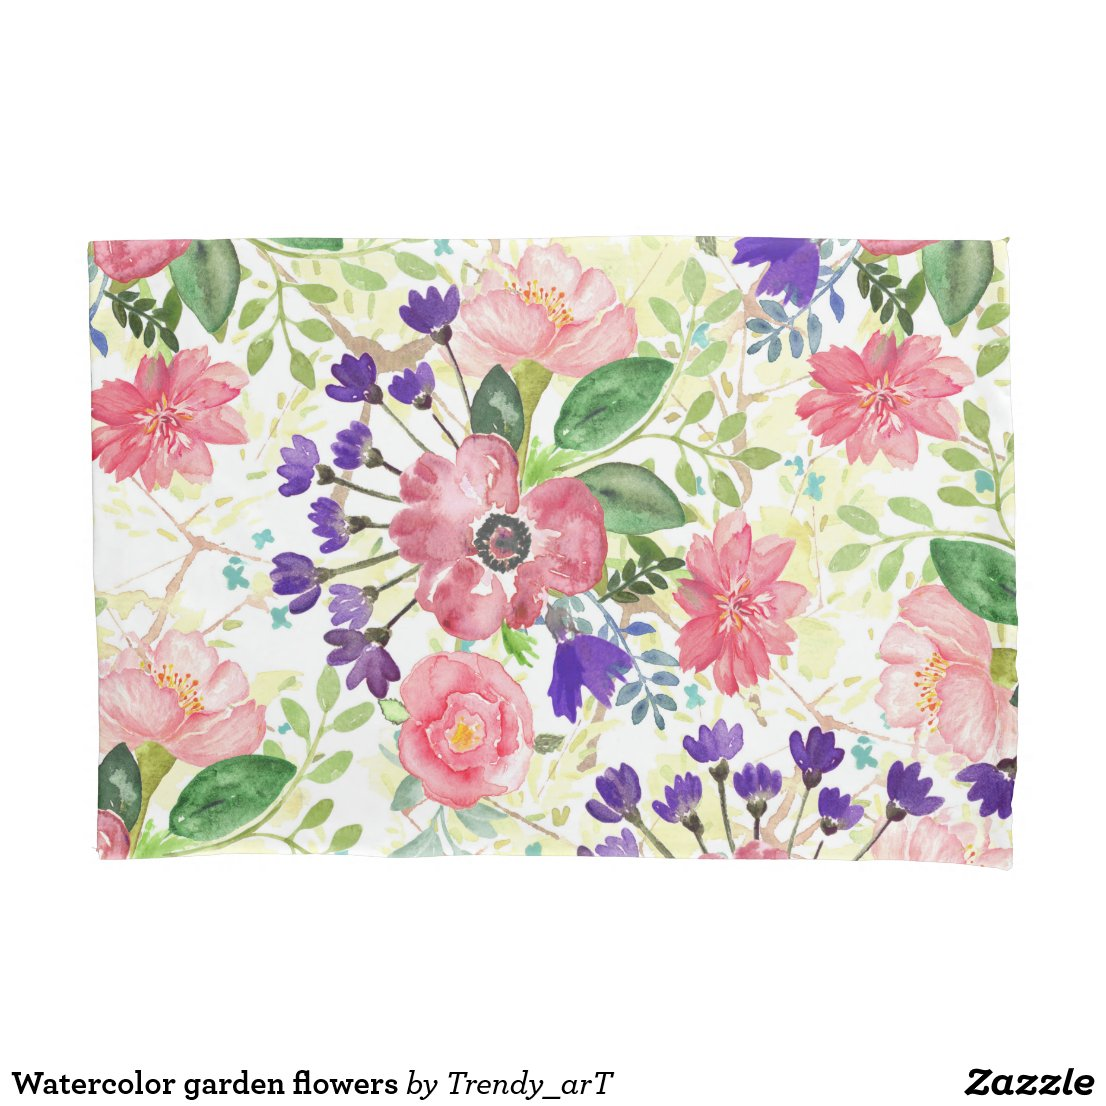 Watercolor garden flowers pillow case